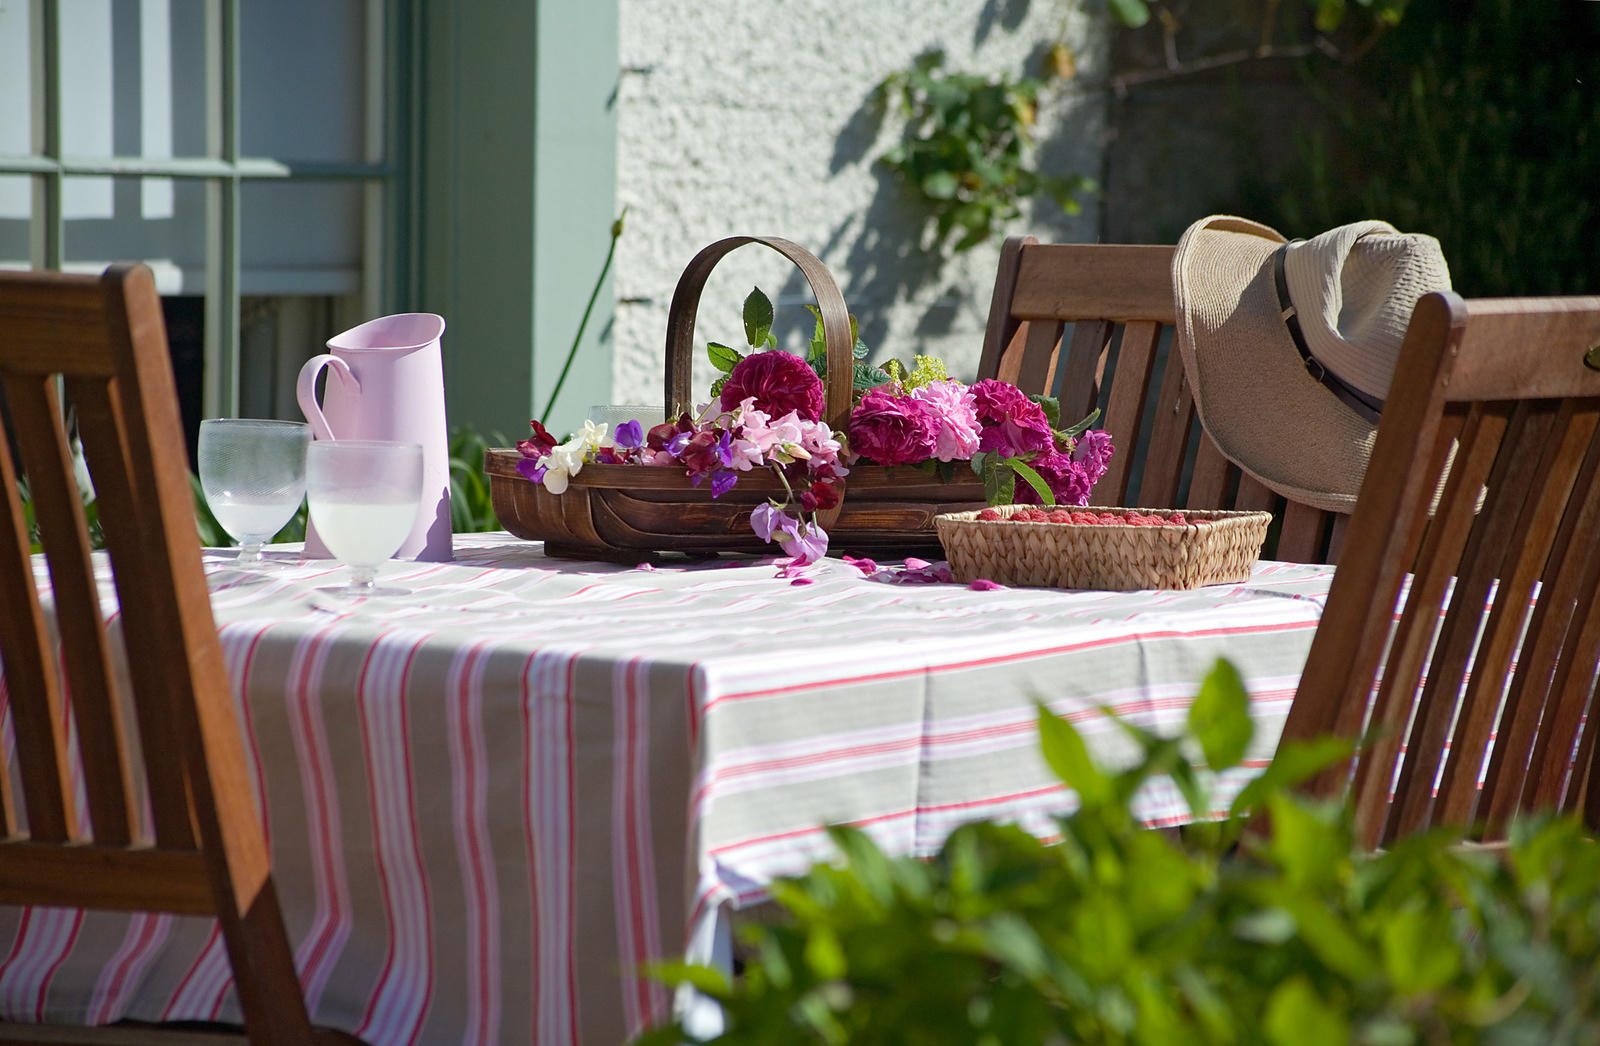 Blackdykes, North Berwick, East Lothian, Scotland, UK. cut flowers (roses & sweet peas), raspberries & lemonade on patio table